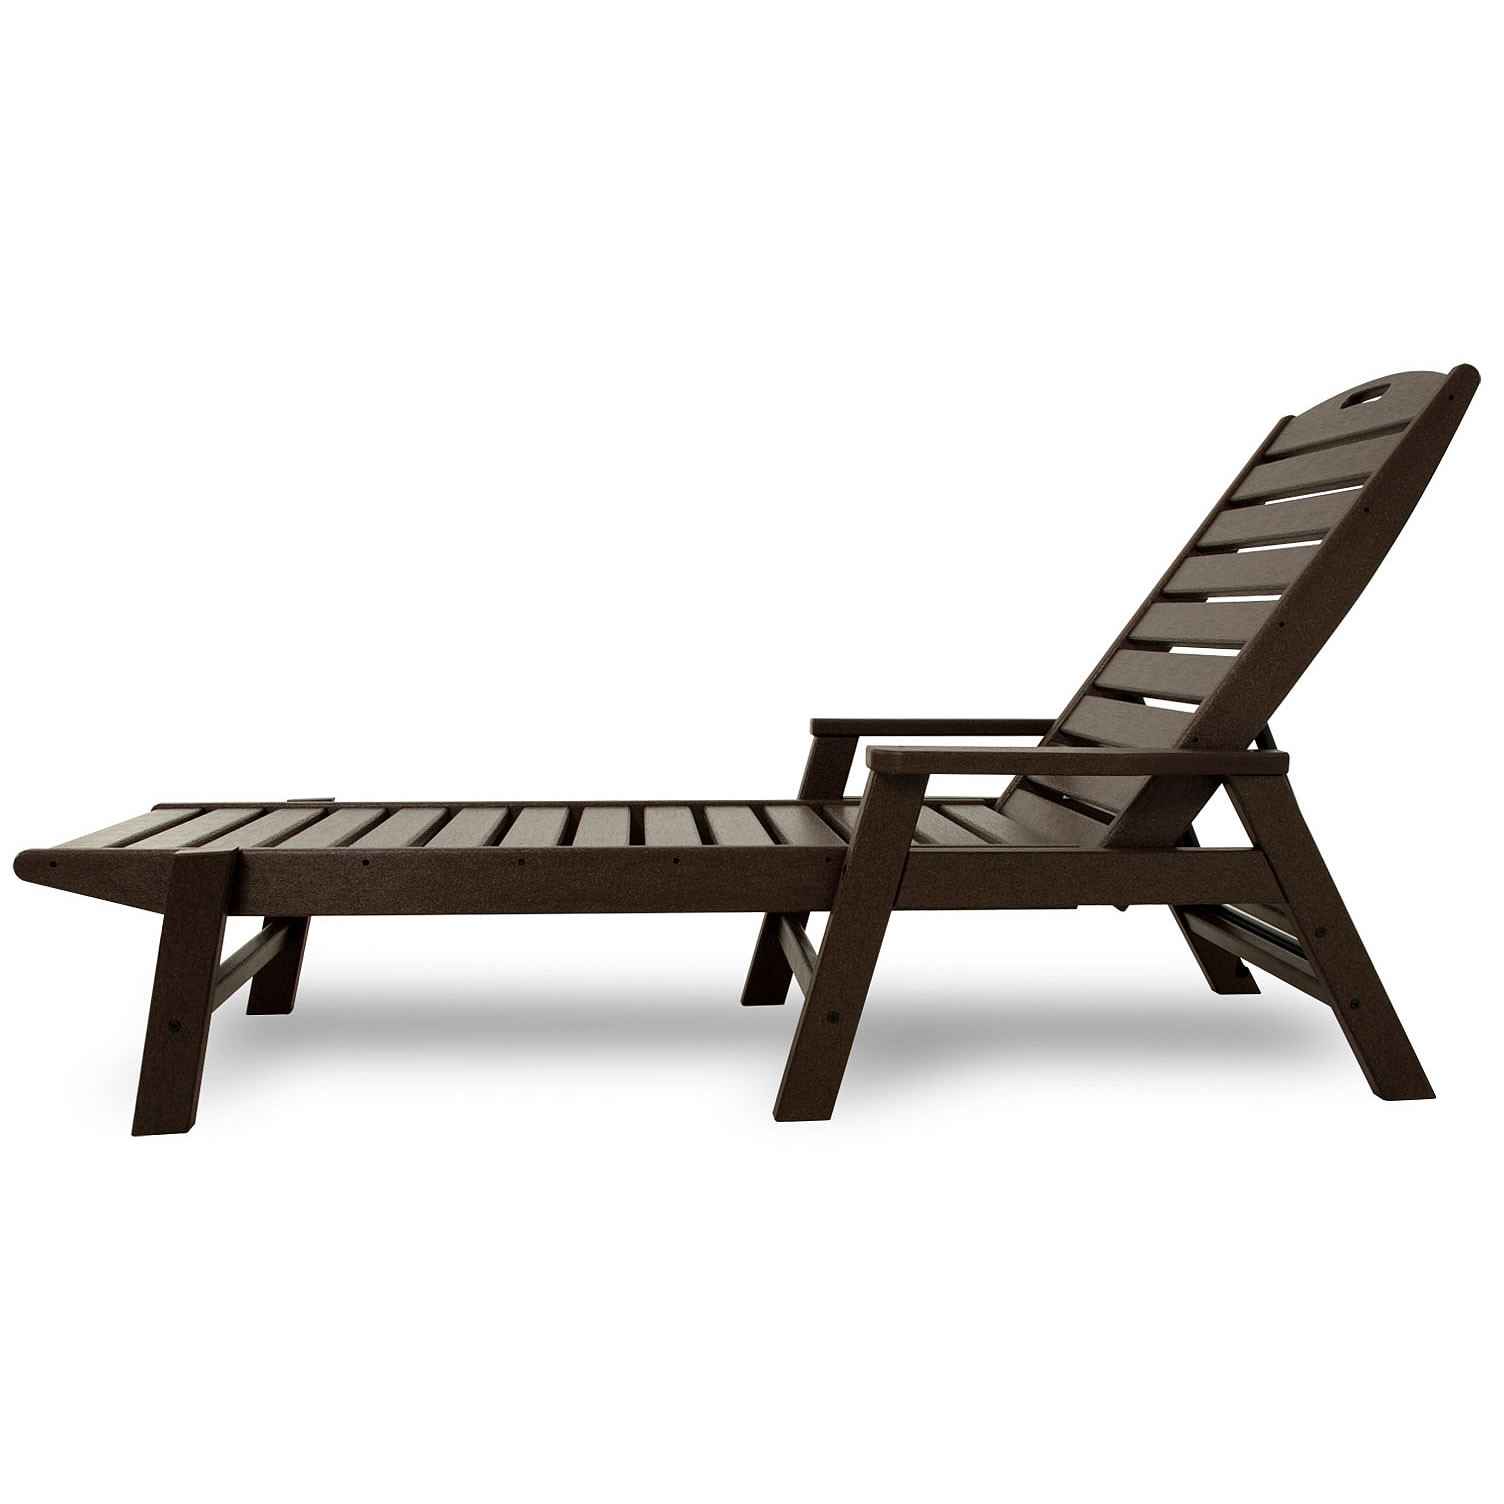 Polywood Nautical Chaise Lounge Nautical Collection